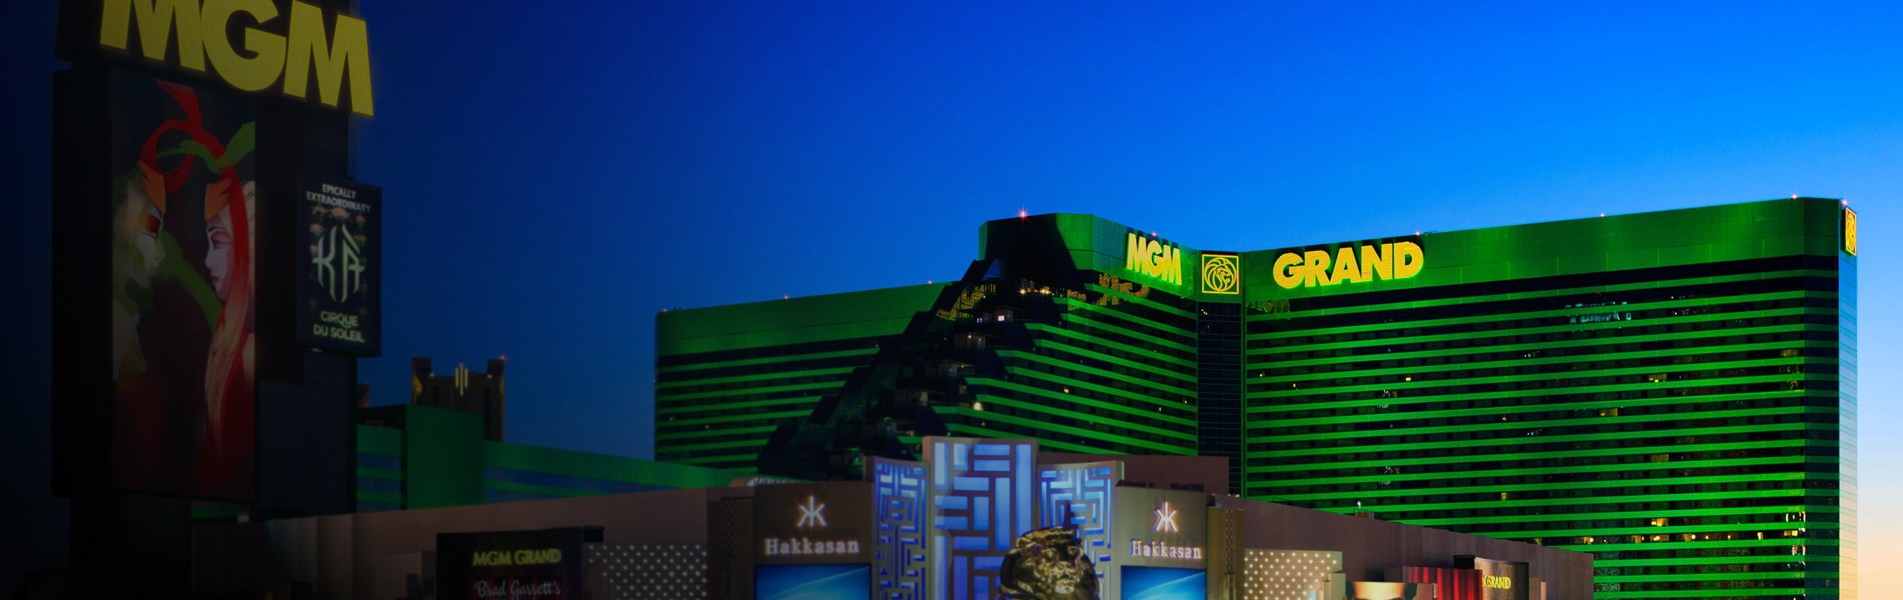 MGM Grand Casino Las Vegas